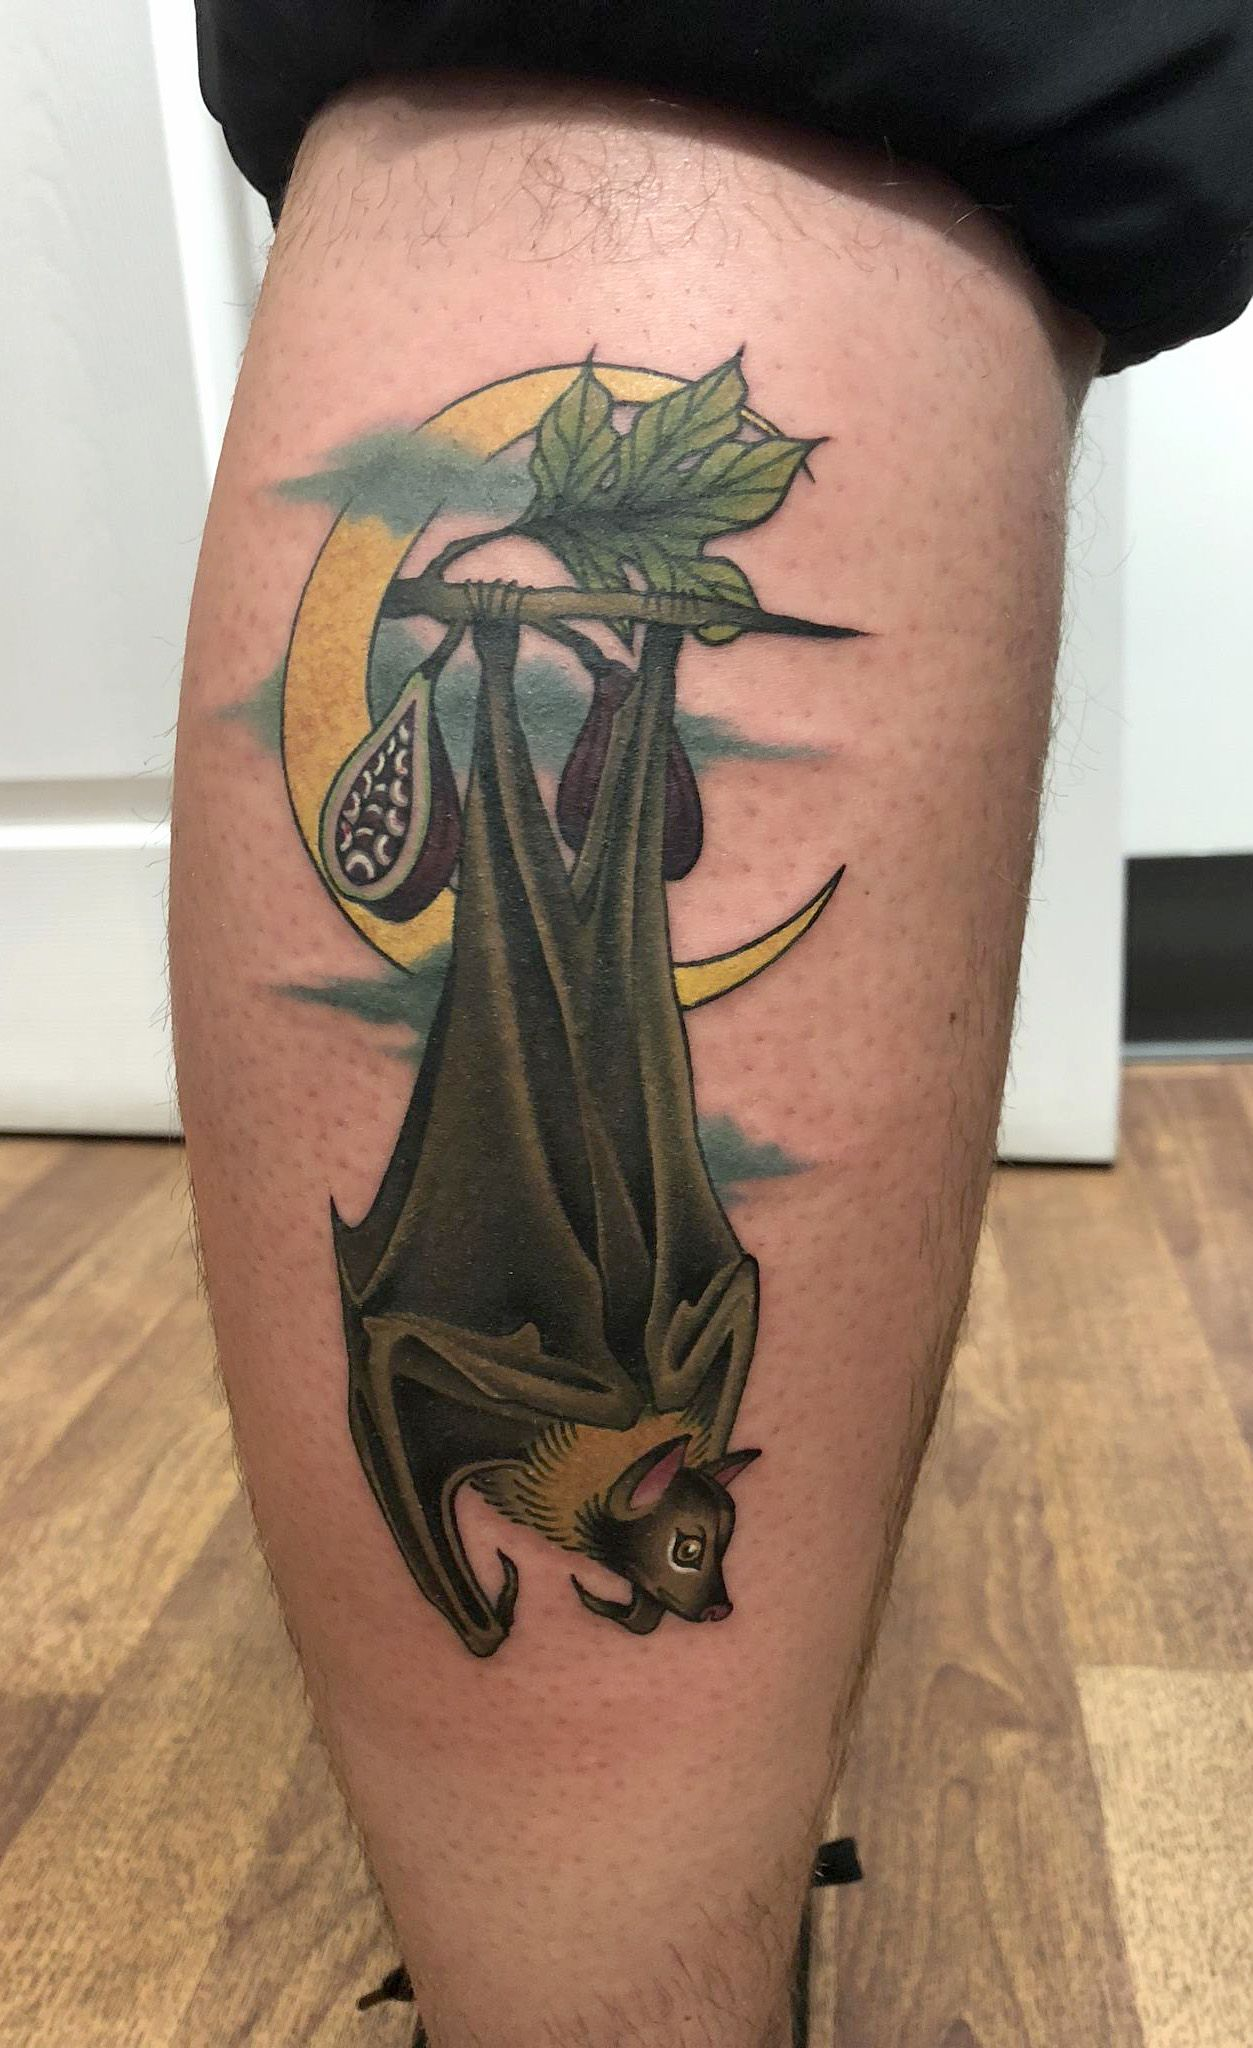 Tiffany Sutton Tattoo Artist: Fruit Bat Tattoo, Plymouth, Michigan. North Main Tattoo